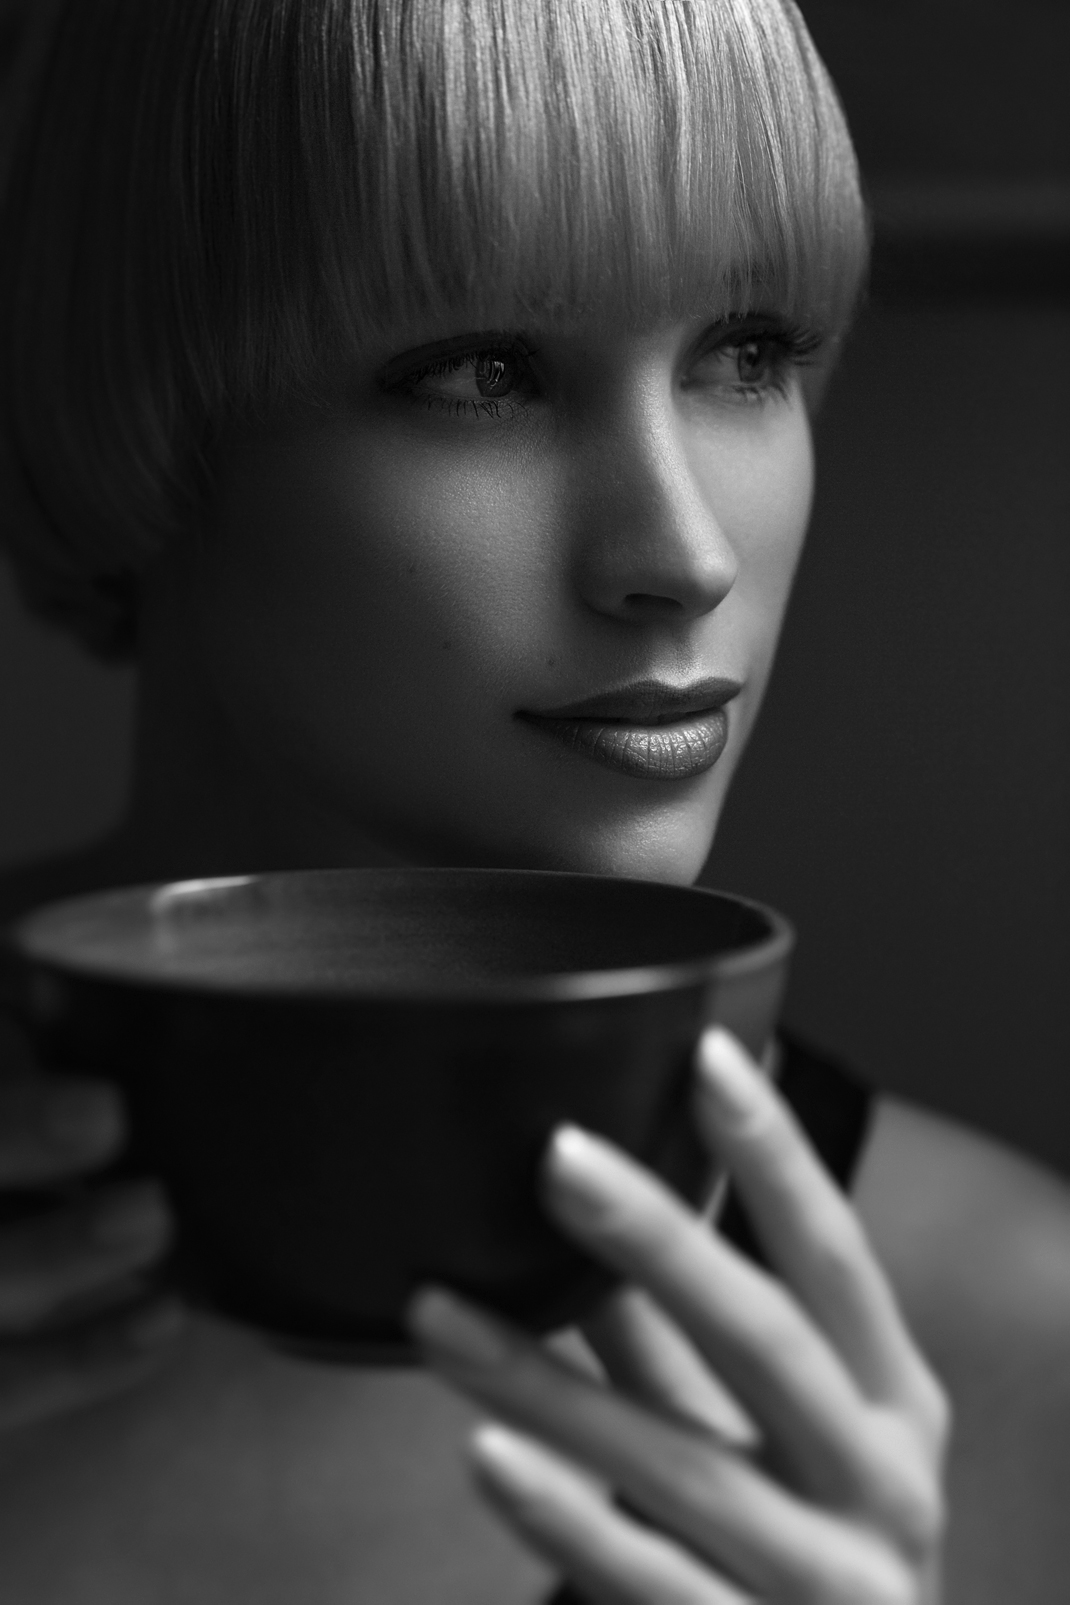 Portrait - Markus Hertzsch - B&W - Girl - Model - Bildlook - Face - Pose - Art - Hair - Eyes - Tea - Jane - Cup